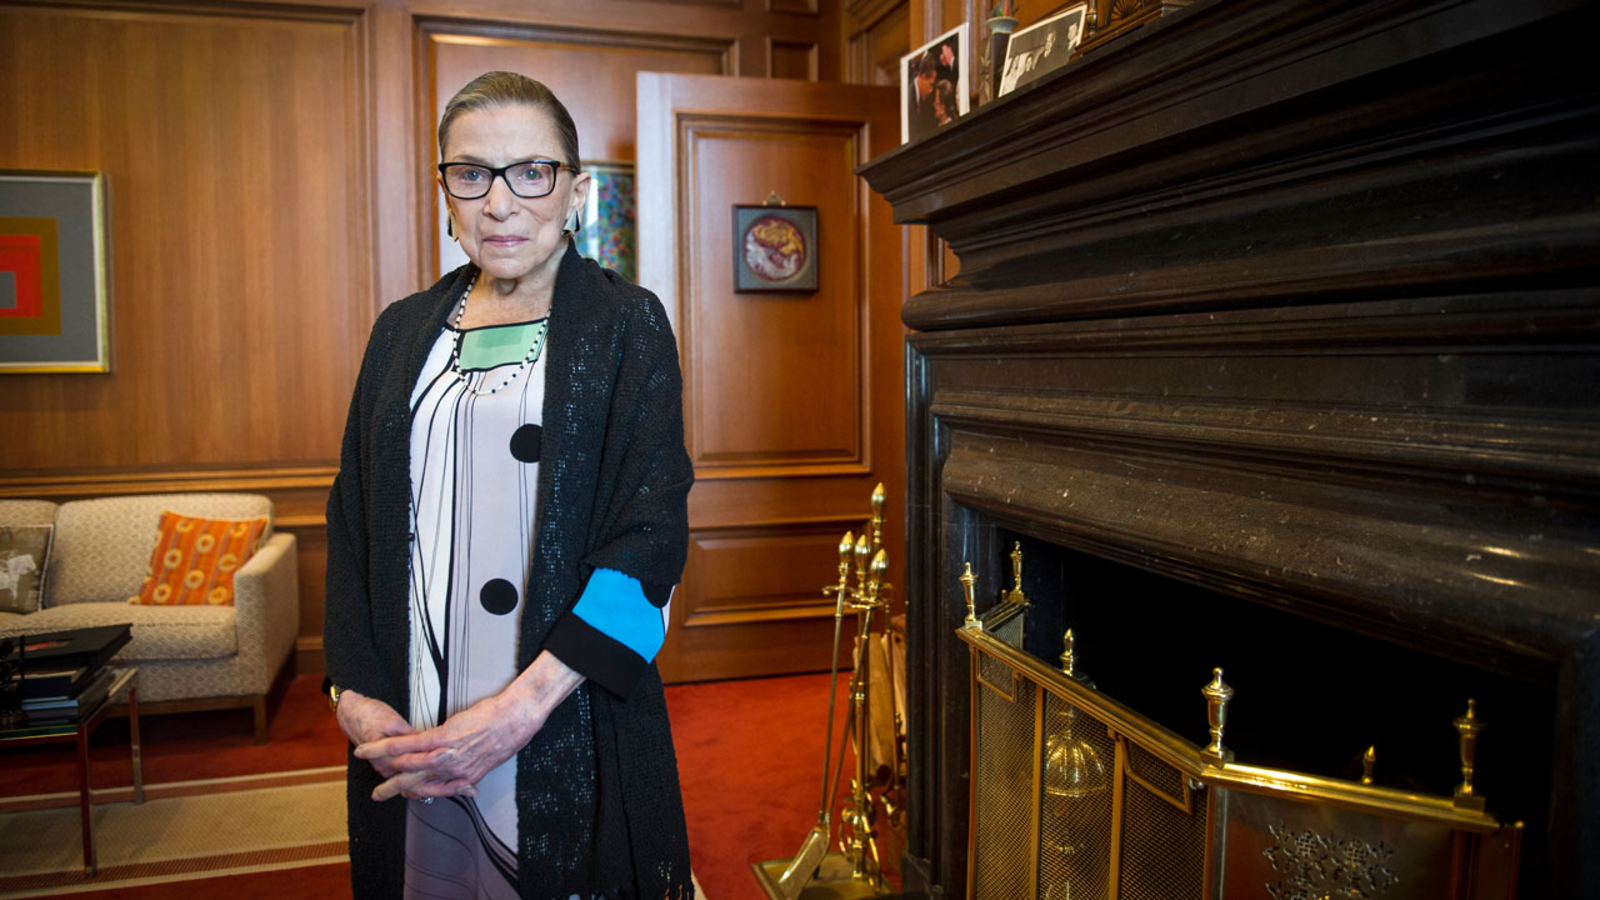 Ruth Bader Ginsburg's death: Obama, Oprah among notable politicians, celebrities to react